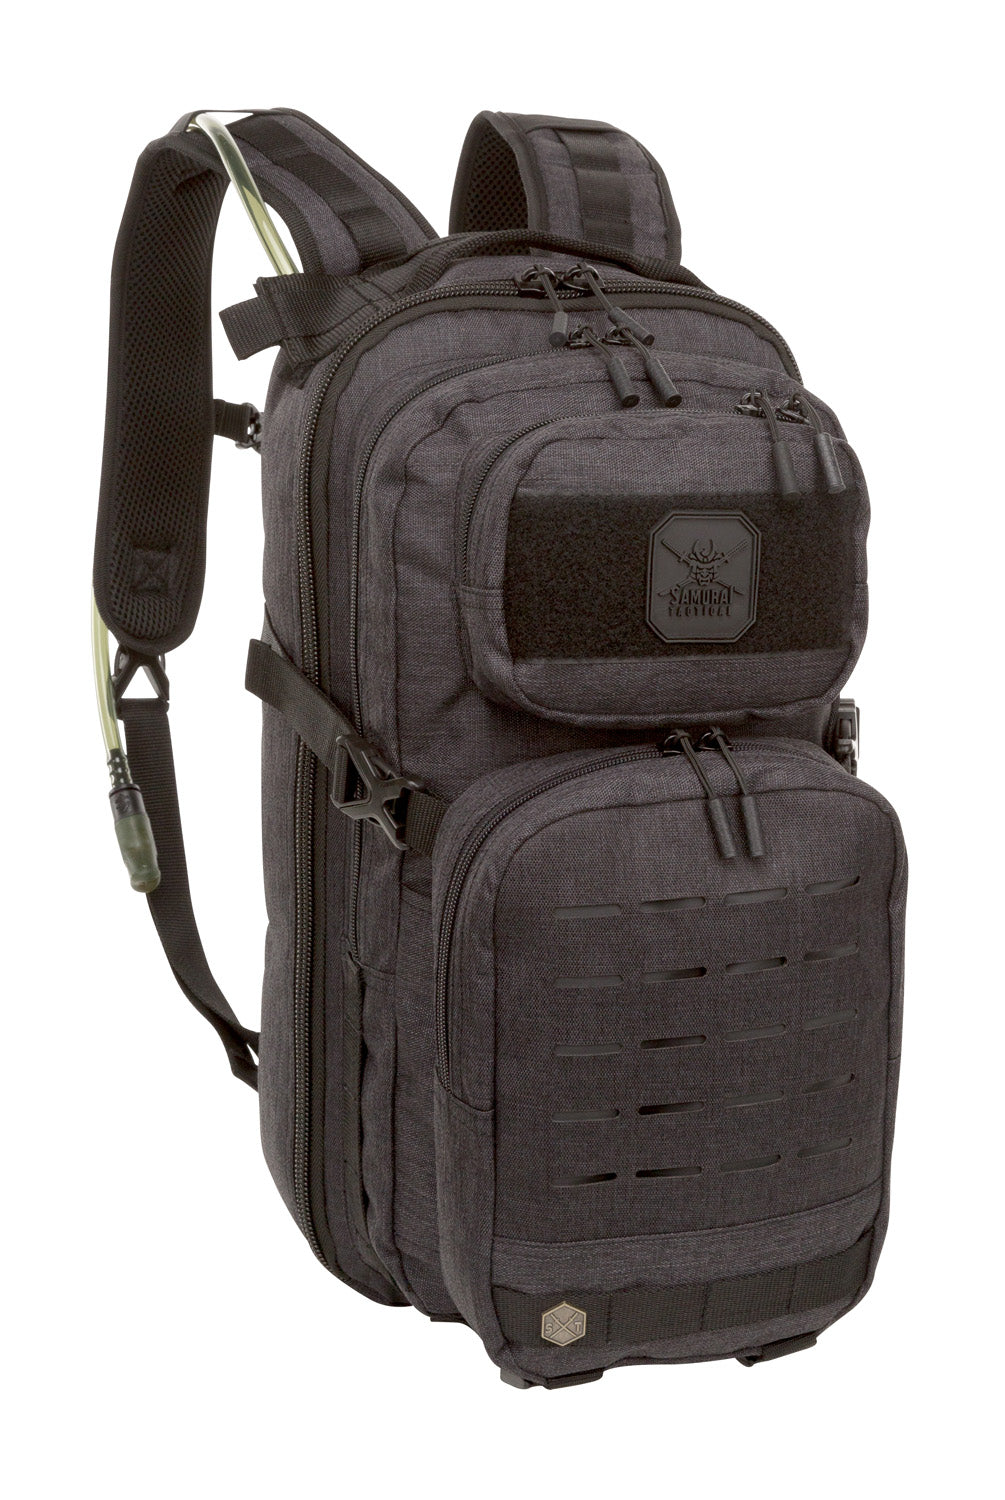 Musashi 3L Hydration Pack